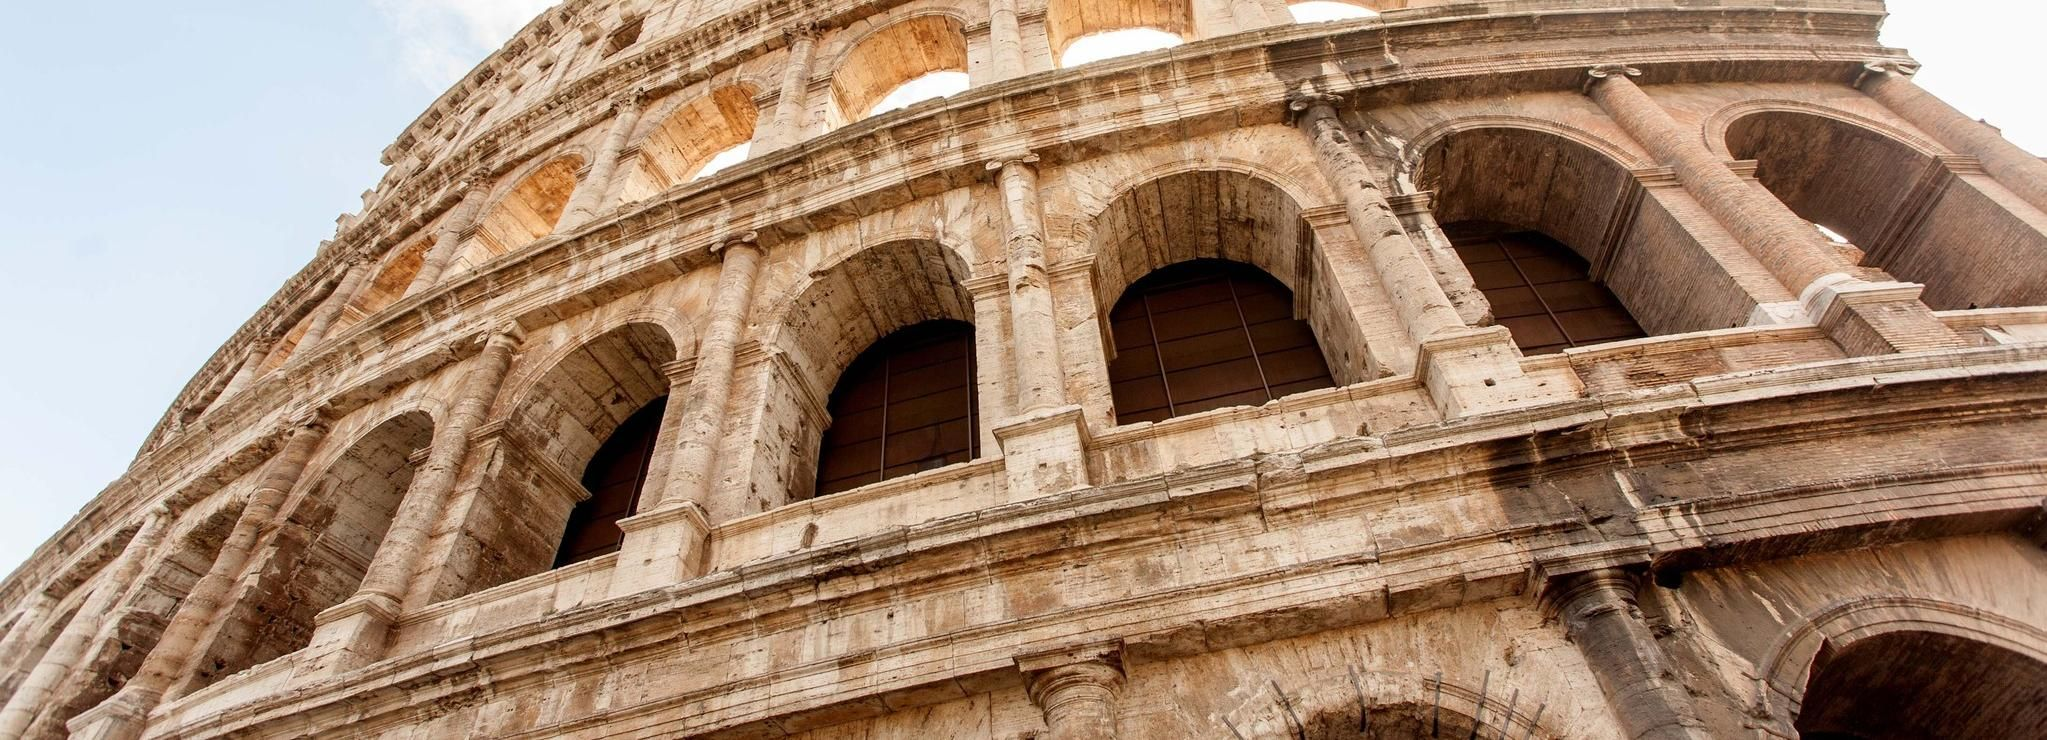 Colosseum Tour, Entry to Palatine Hill and Roman Forum